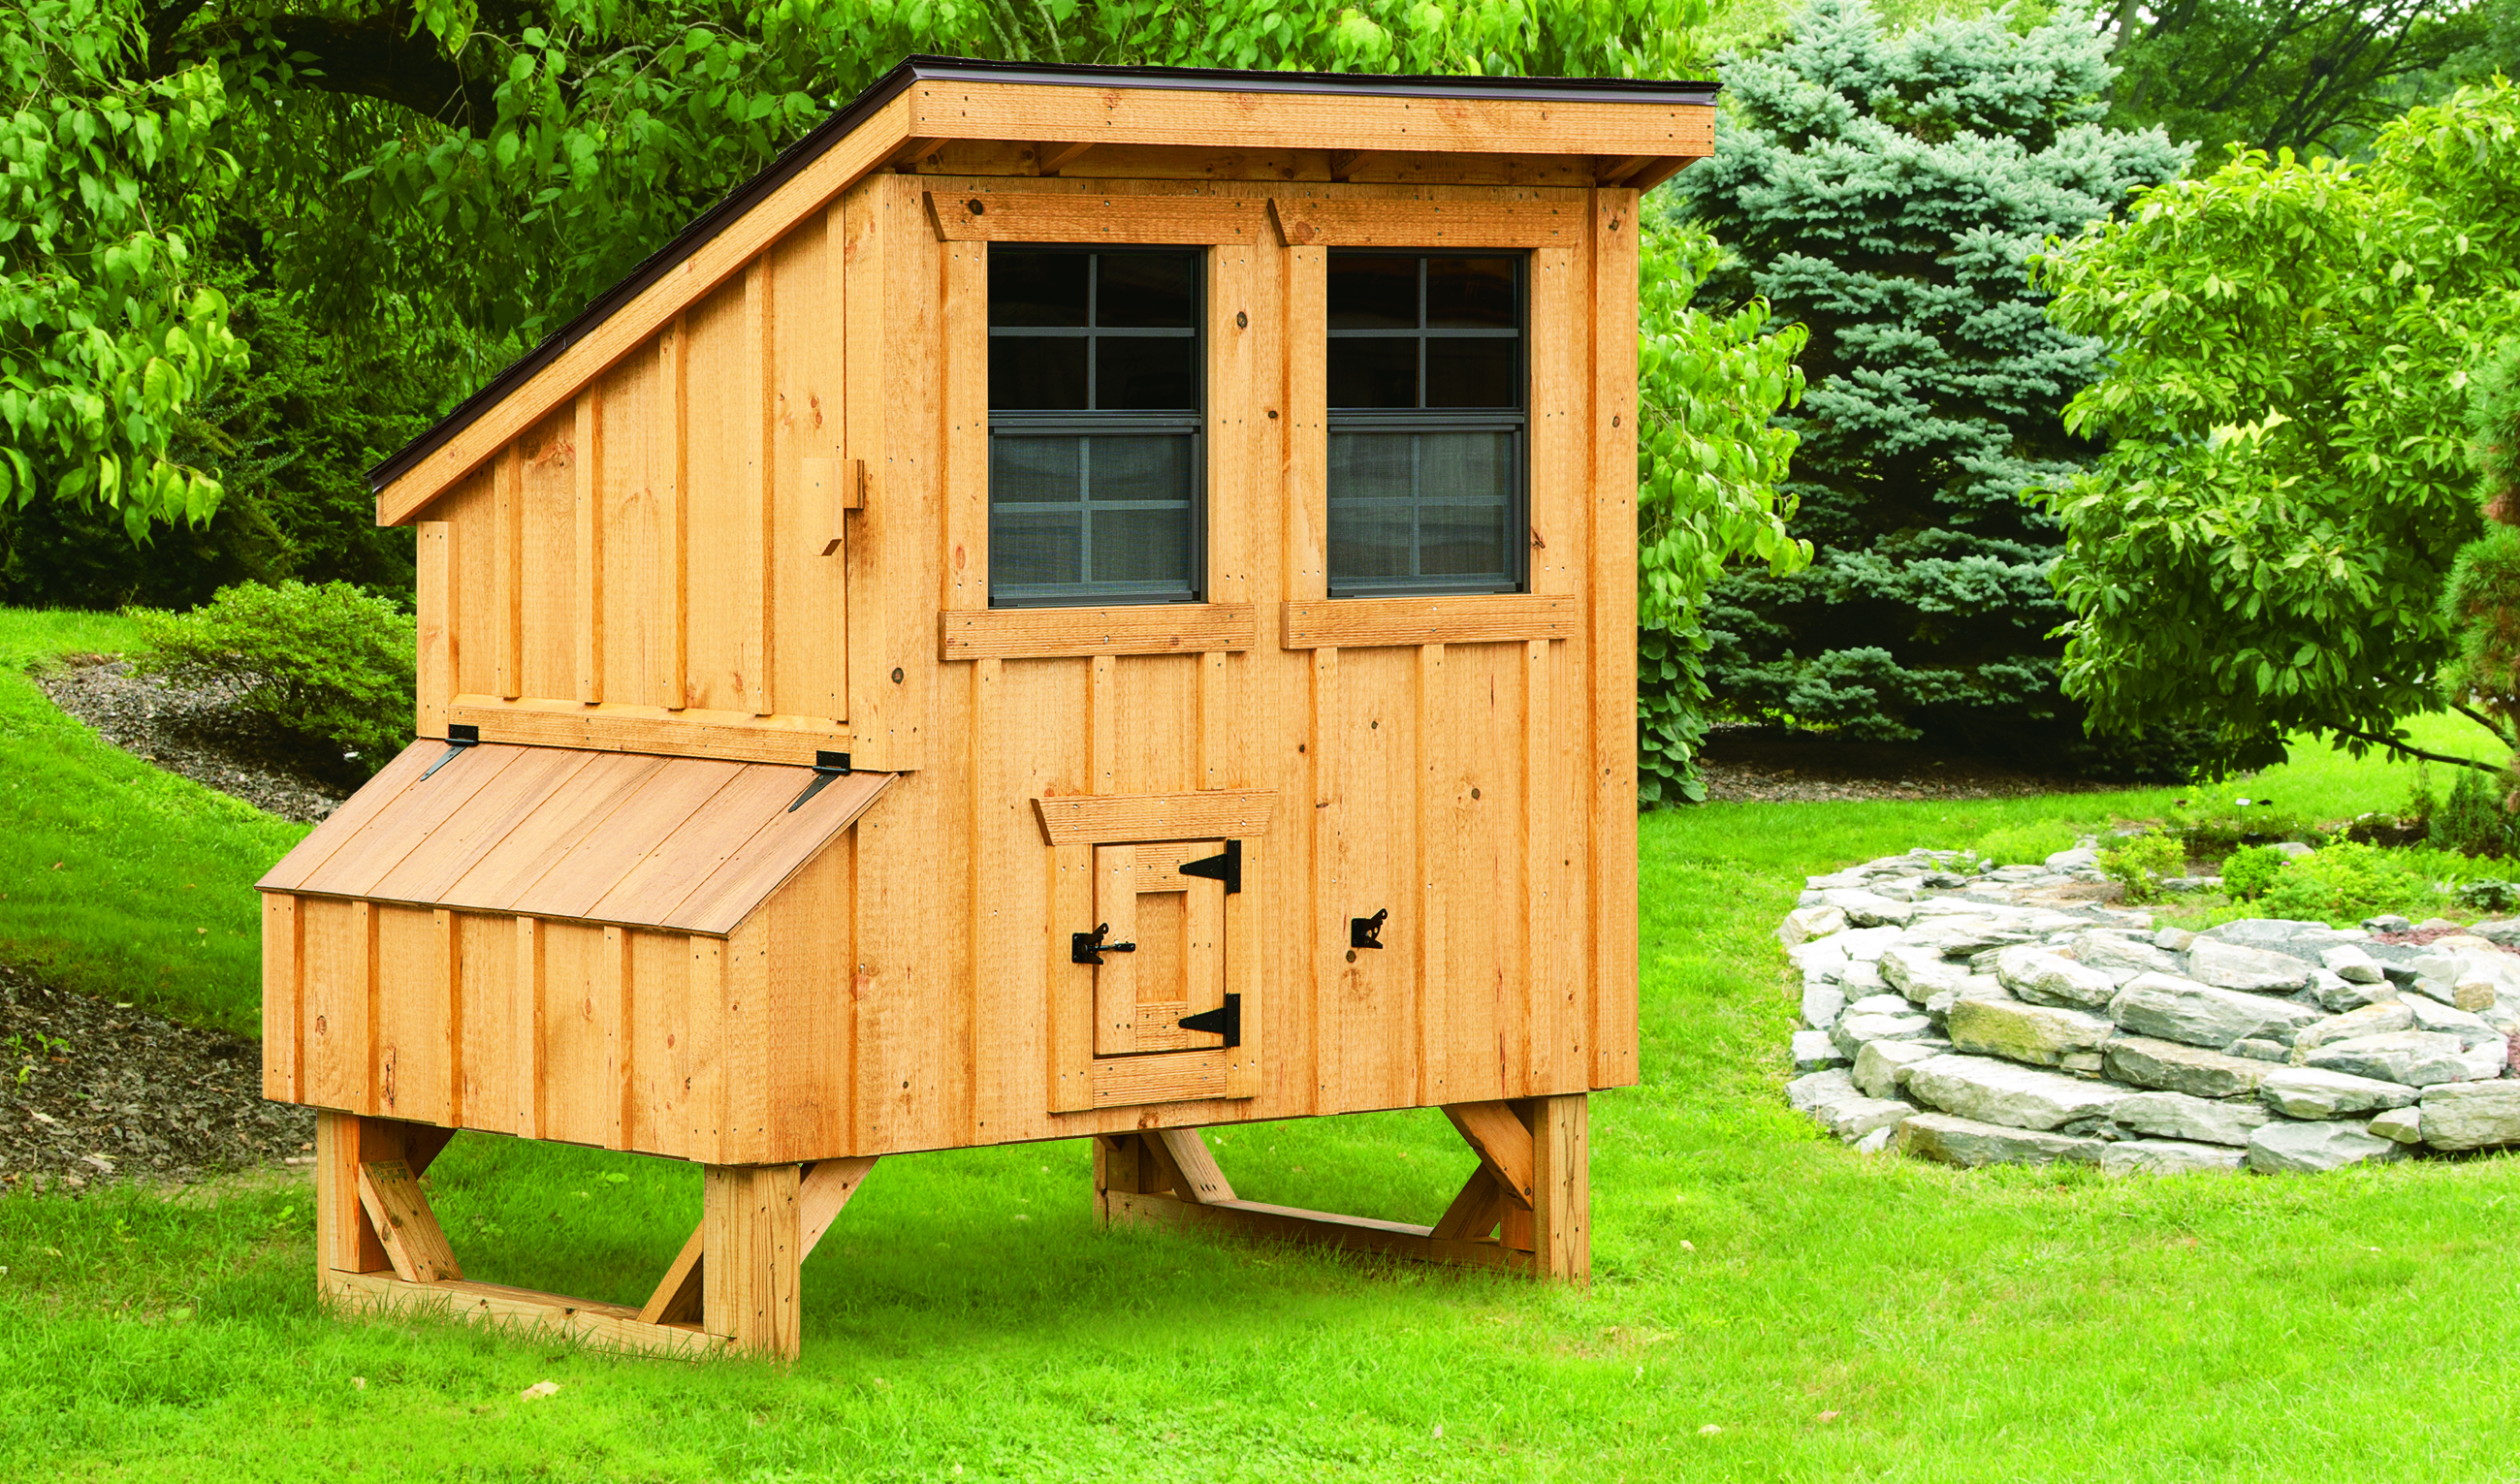 chicken pet house hutch hen run backyard supplies image hutches wood nesting poultry pawhut coop raised box deluxe w